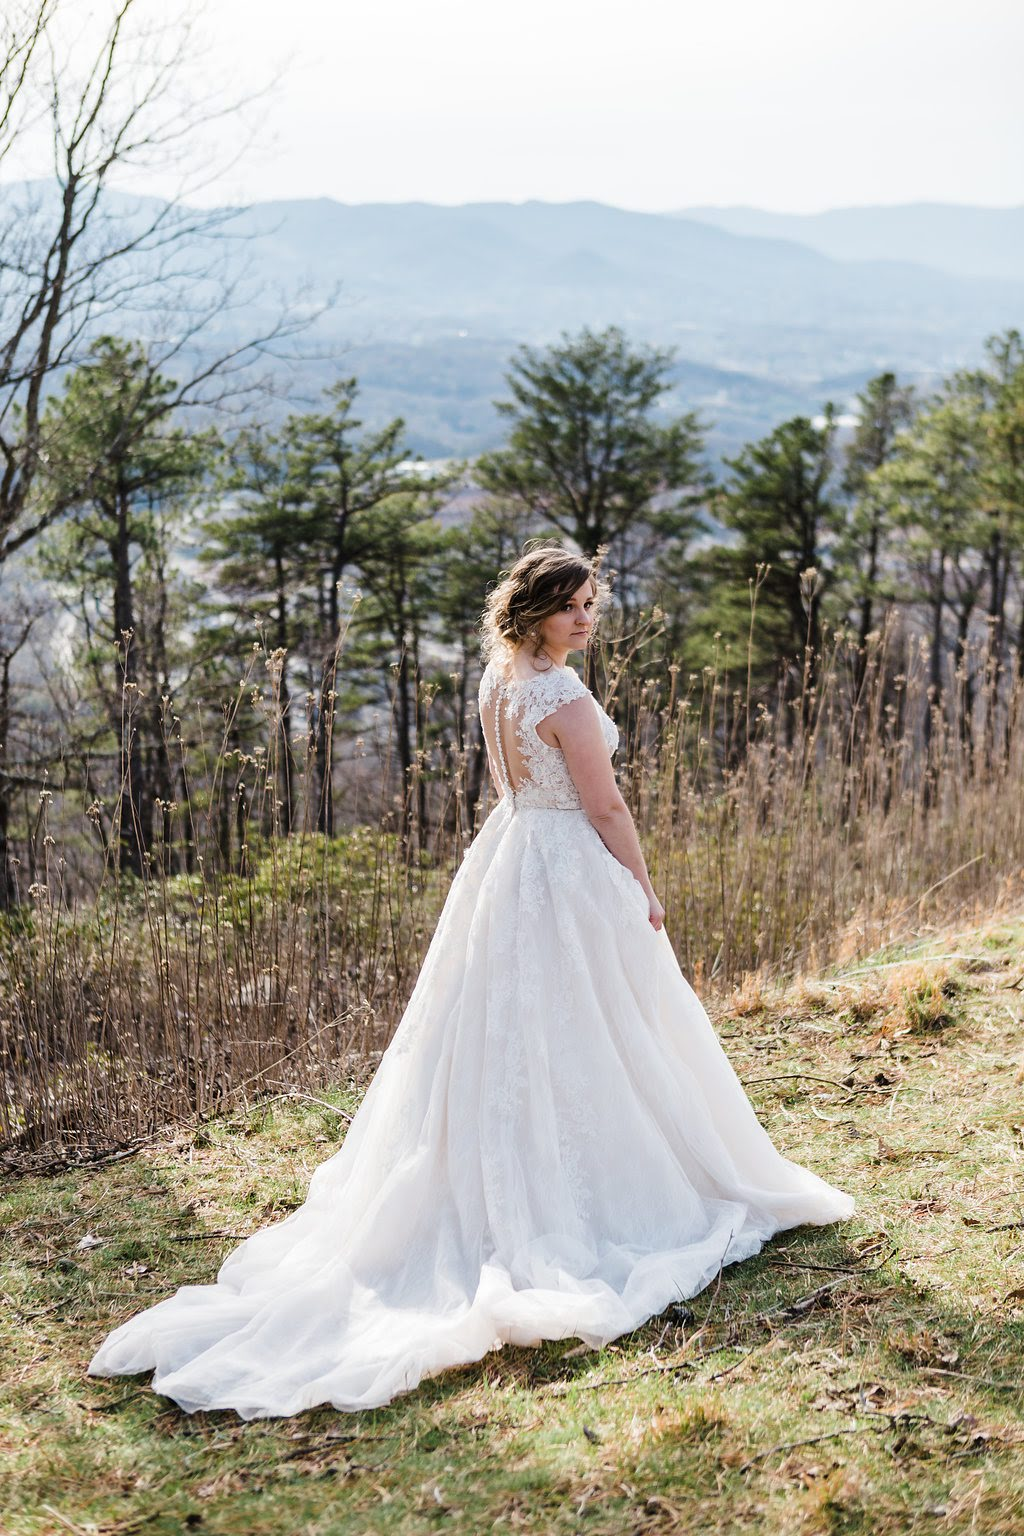 MountainStyledShoot_PearlEvents_215.jpg